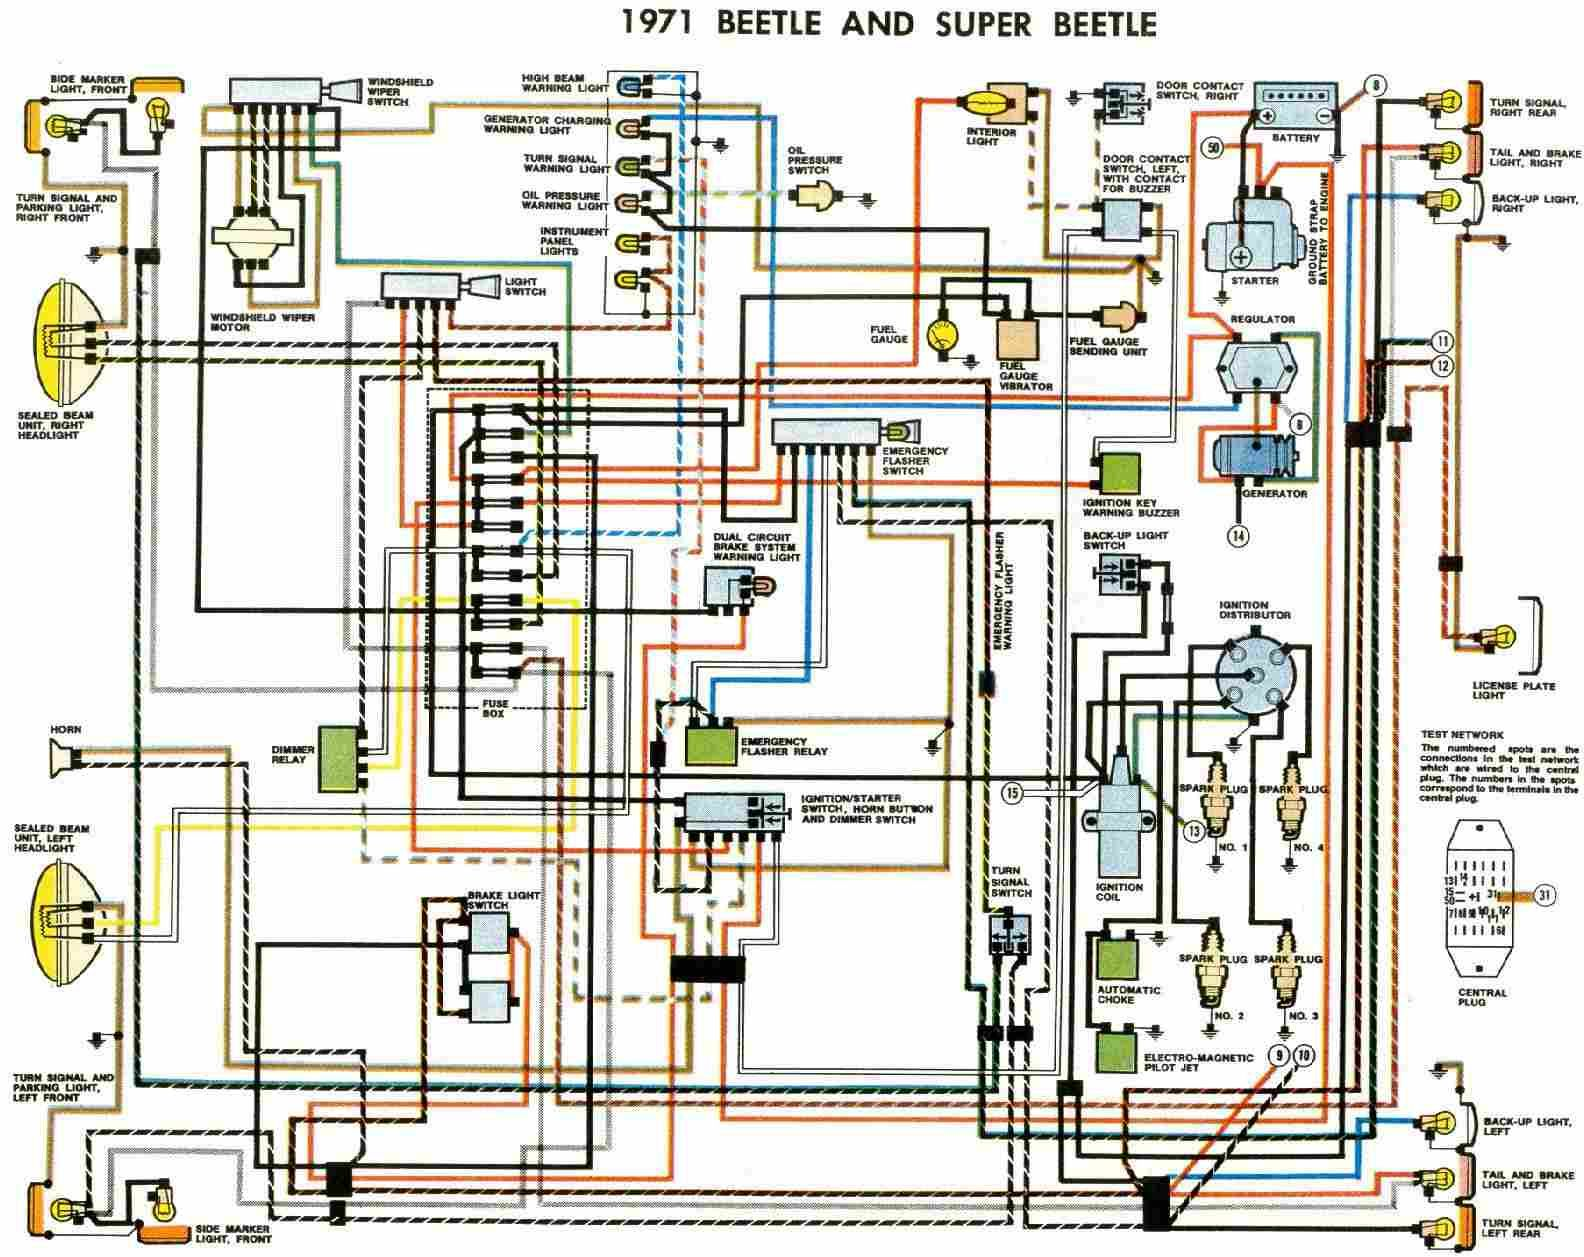 6379f2a777a0eb1b27fdba46670ceb6a free auto wiring diagram 1971 vw beetle and super beetle byocar 1968 vw bug wiring diagram at aneh.co